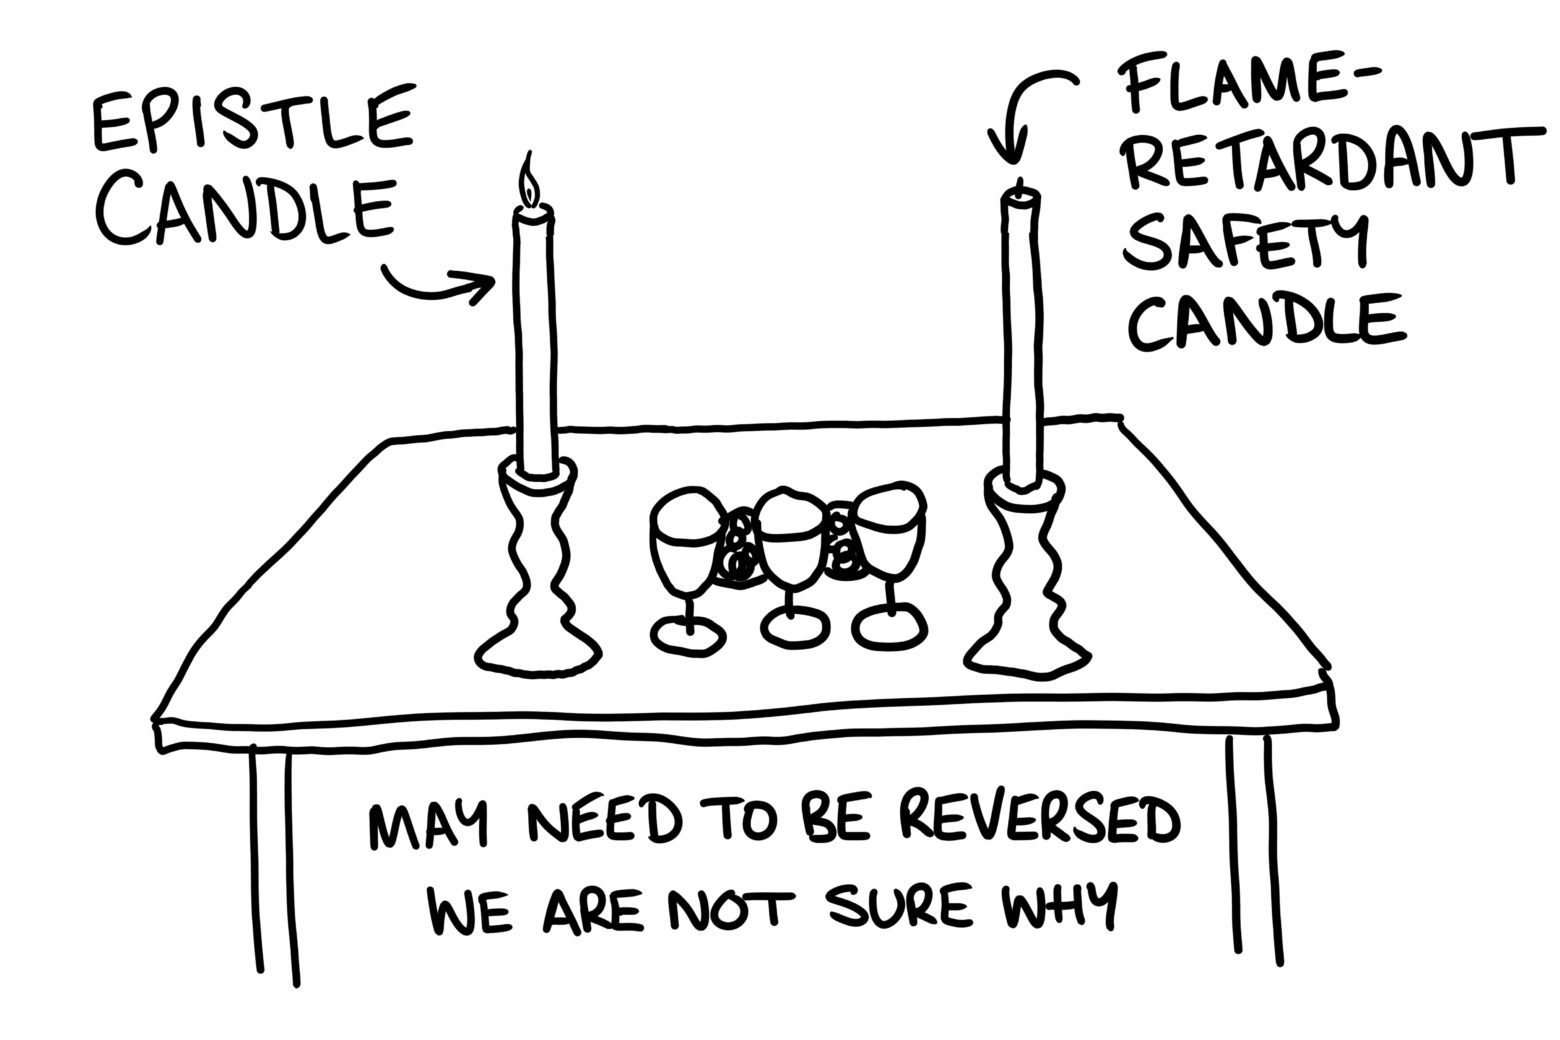 Flame retardant candle